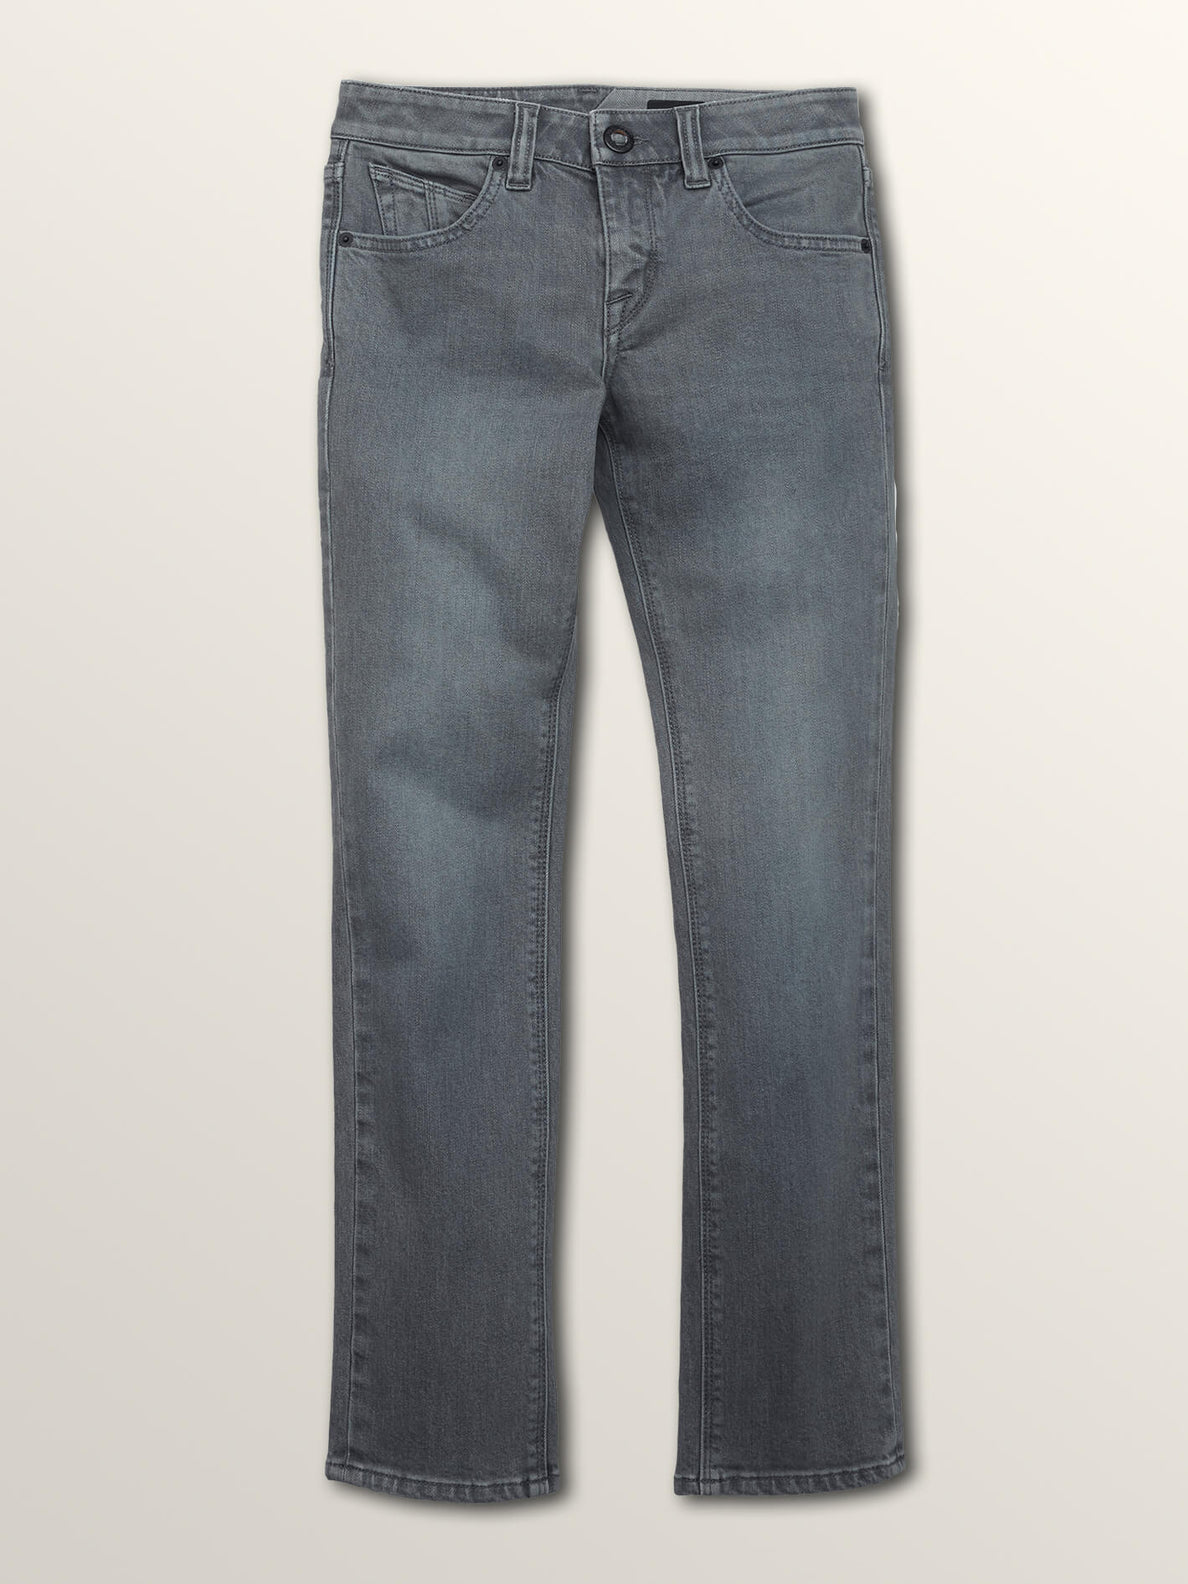 Big Boys 2X4 Skinny Fit Jeans In Grey Vintage, Front View